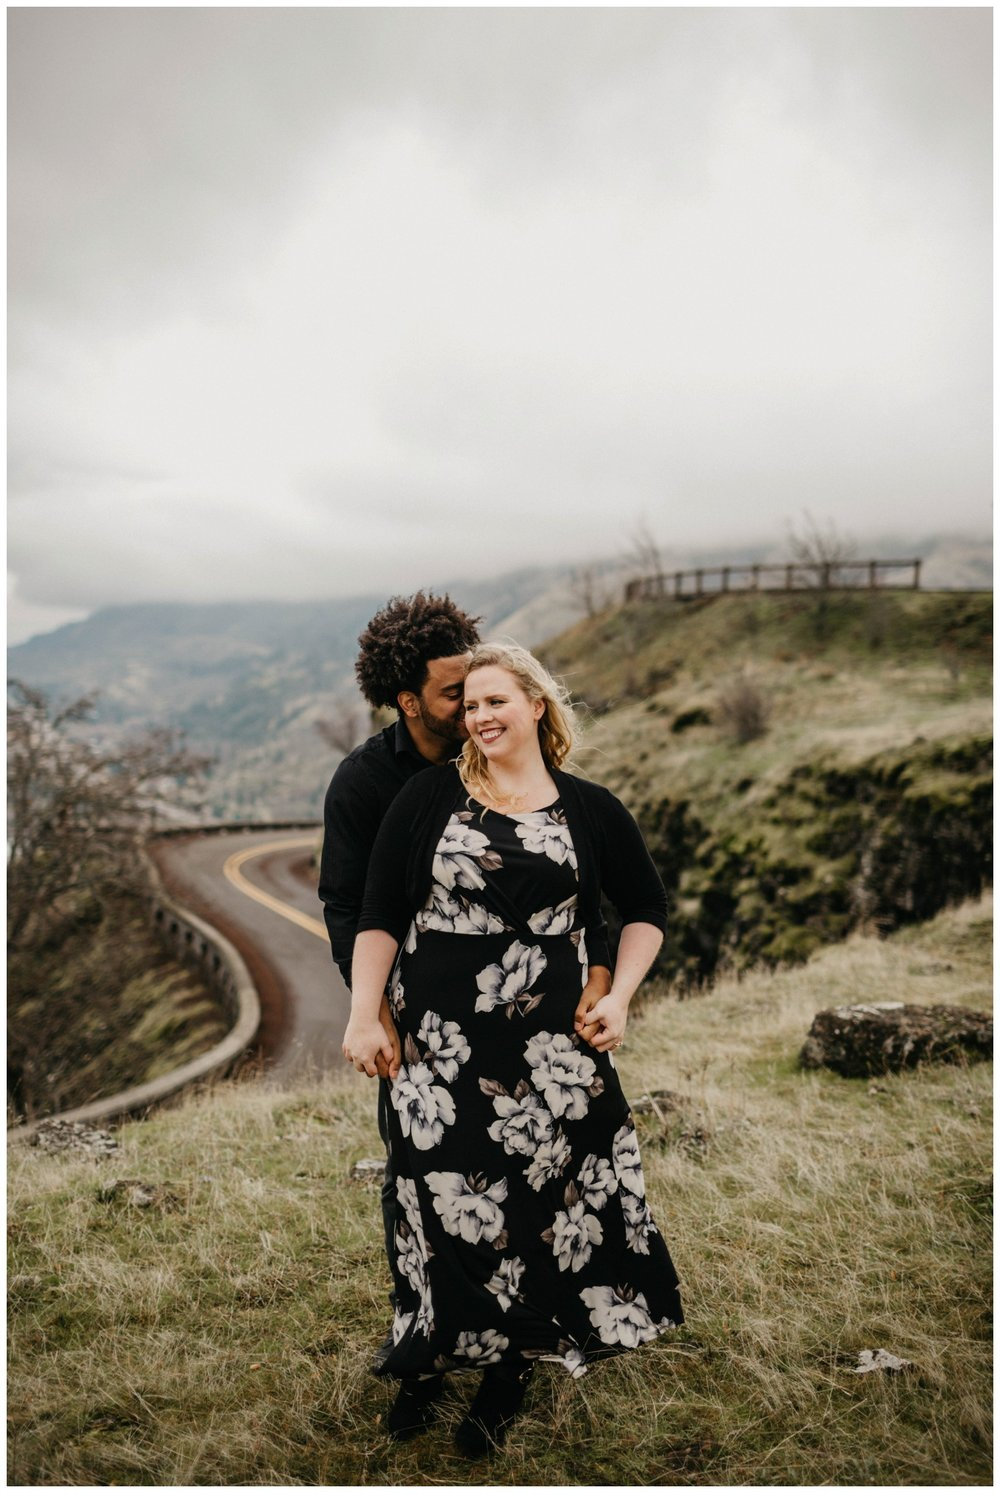 Biracial couple standing together at Rowena Crest